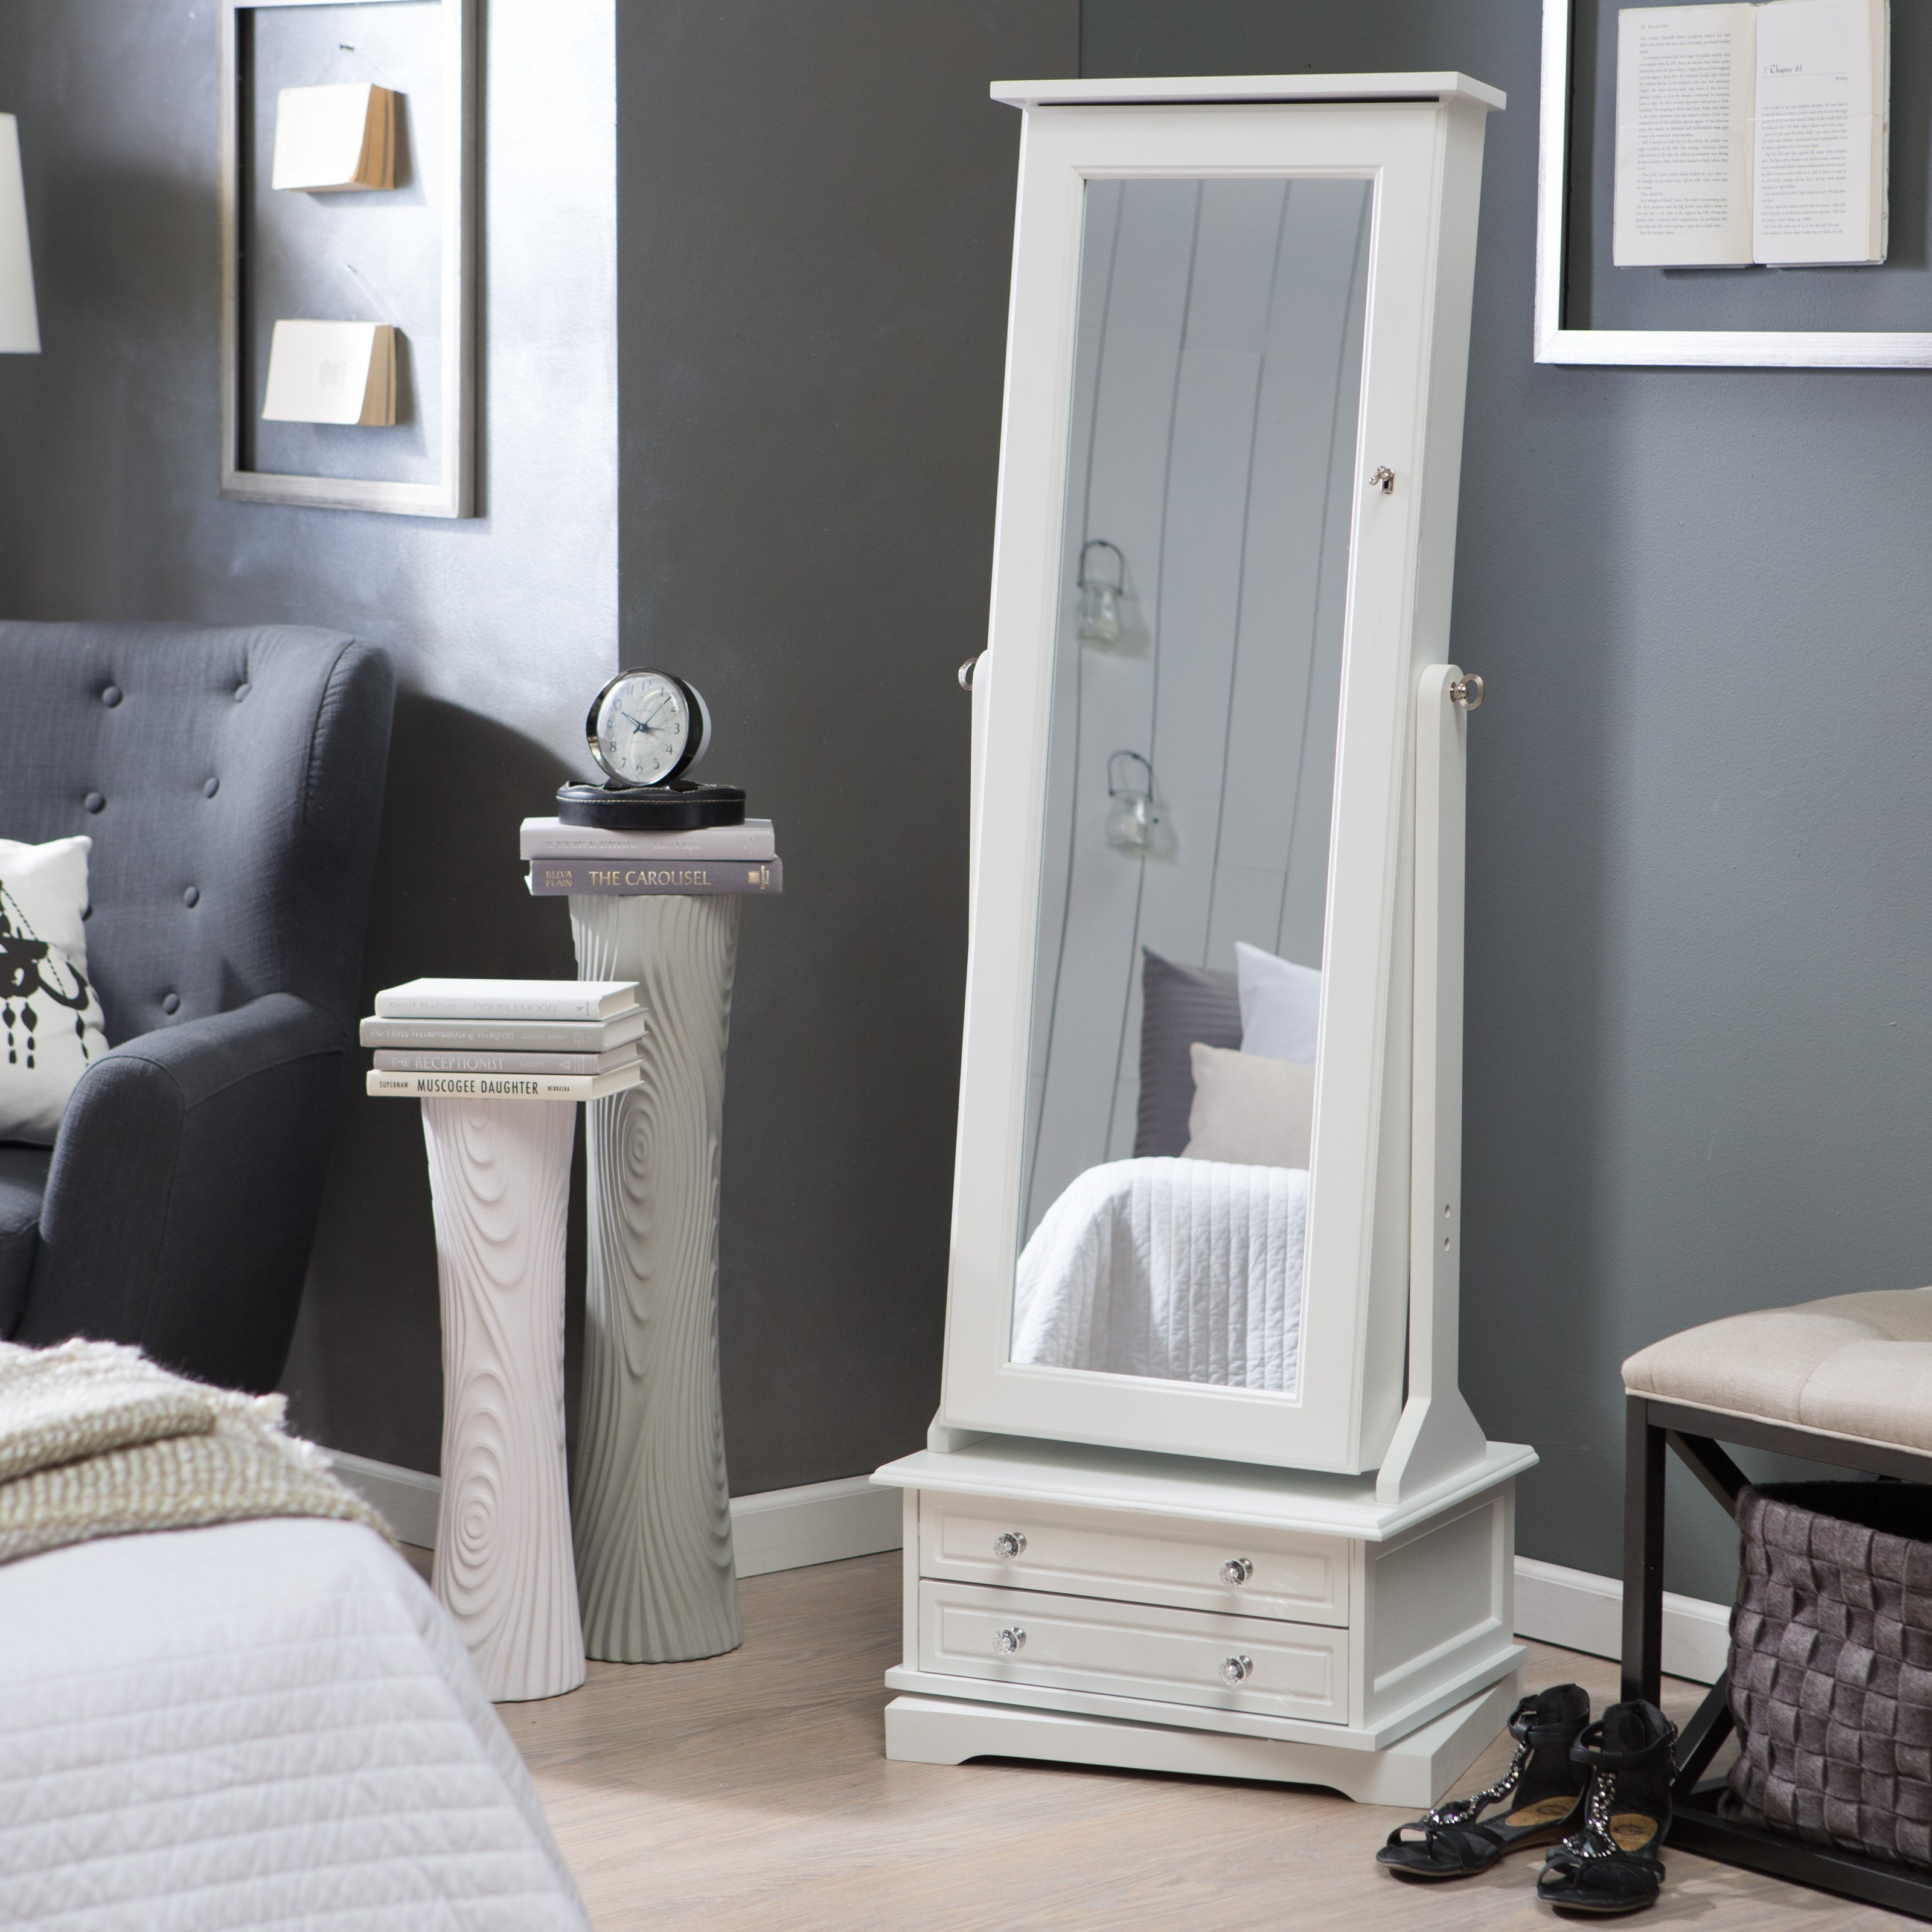 Remarkable White Furnishing In Living Room Deco Showcasing Intended For Large White Floor Mirror (View 14 of 15)